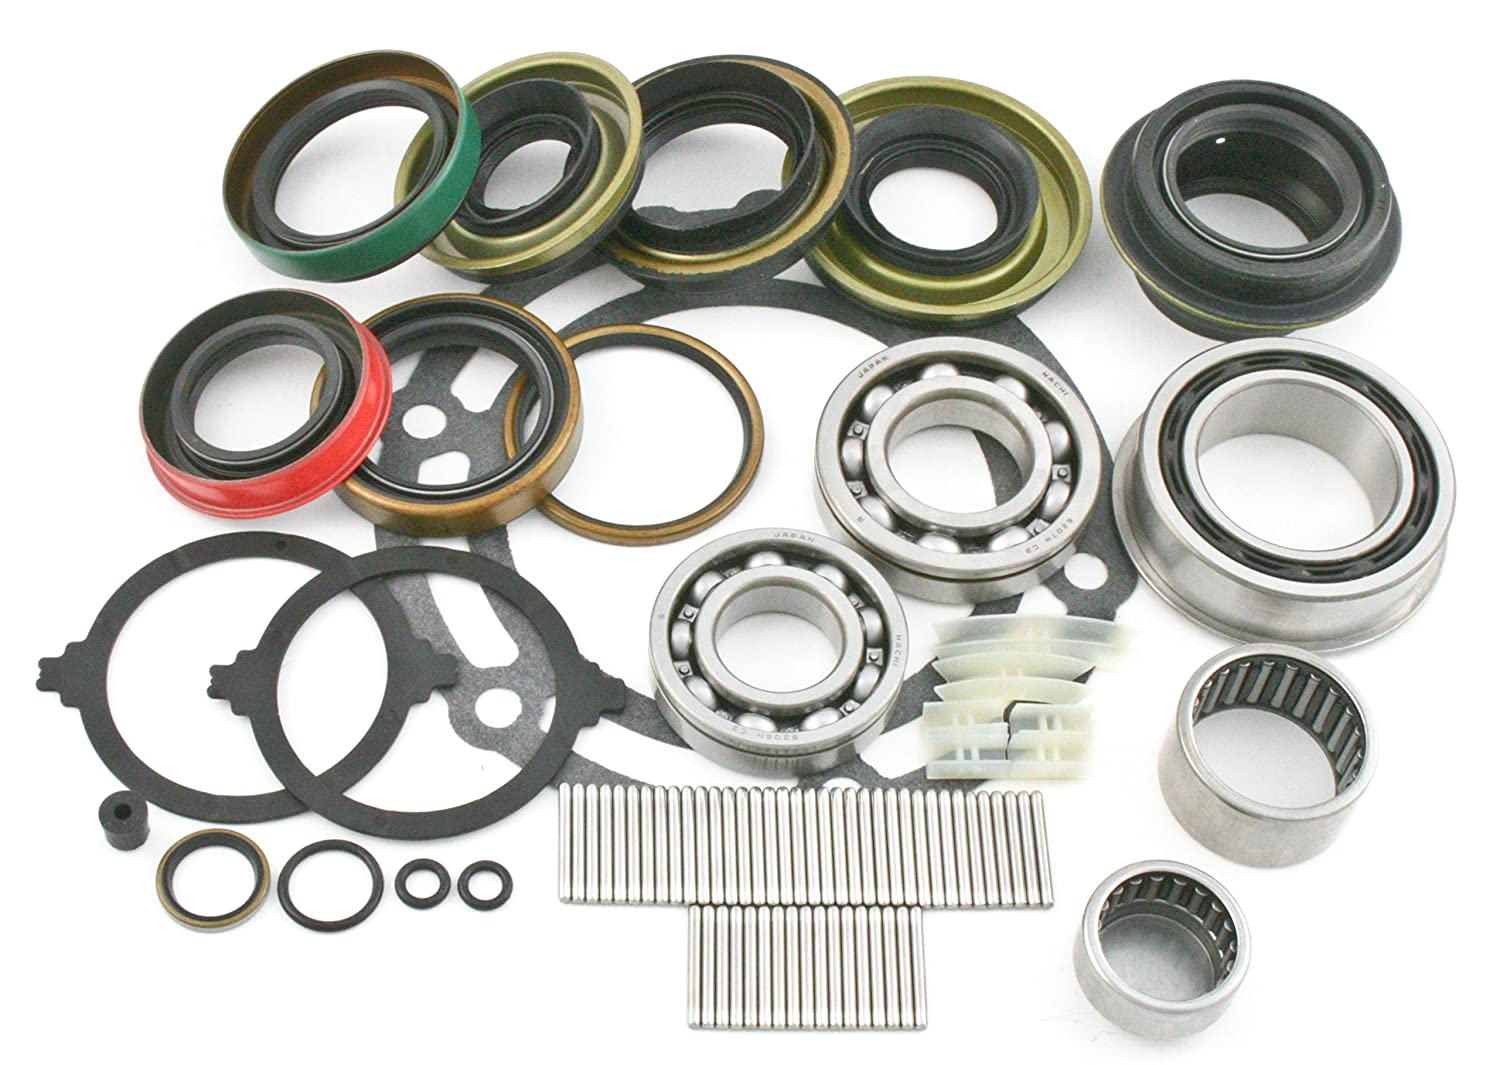 Jeep Np242 Transfer Case Rebuild Kit Transmissions Parts Amazon Cherokee Wiring Harness Canada